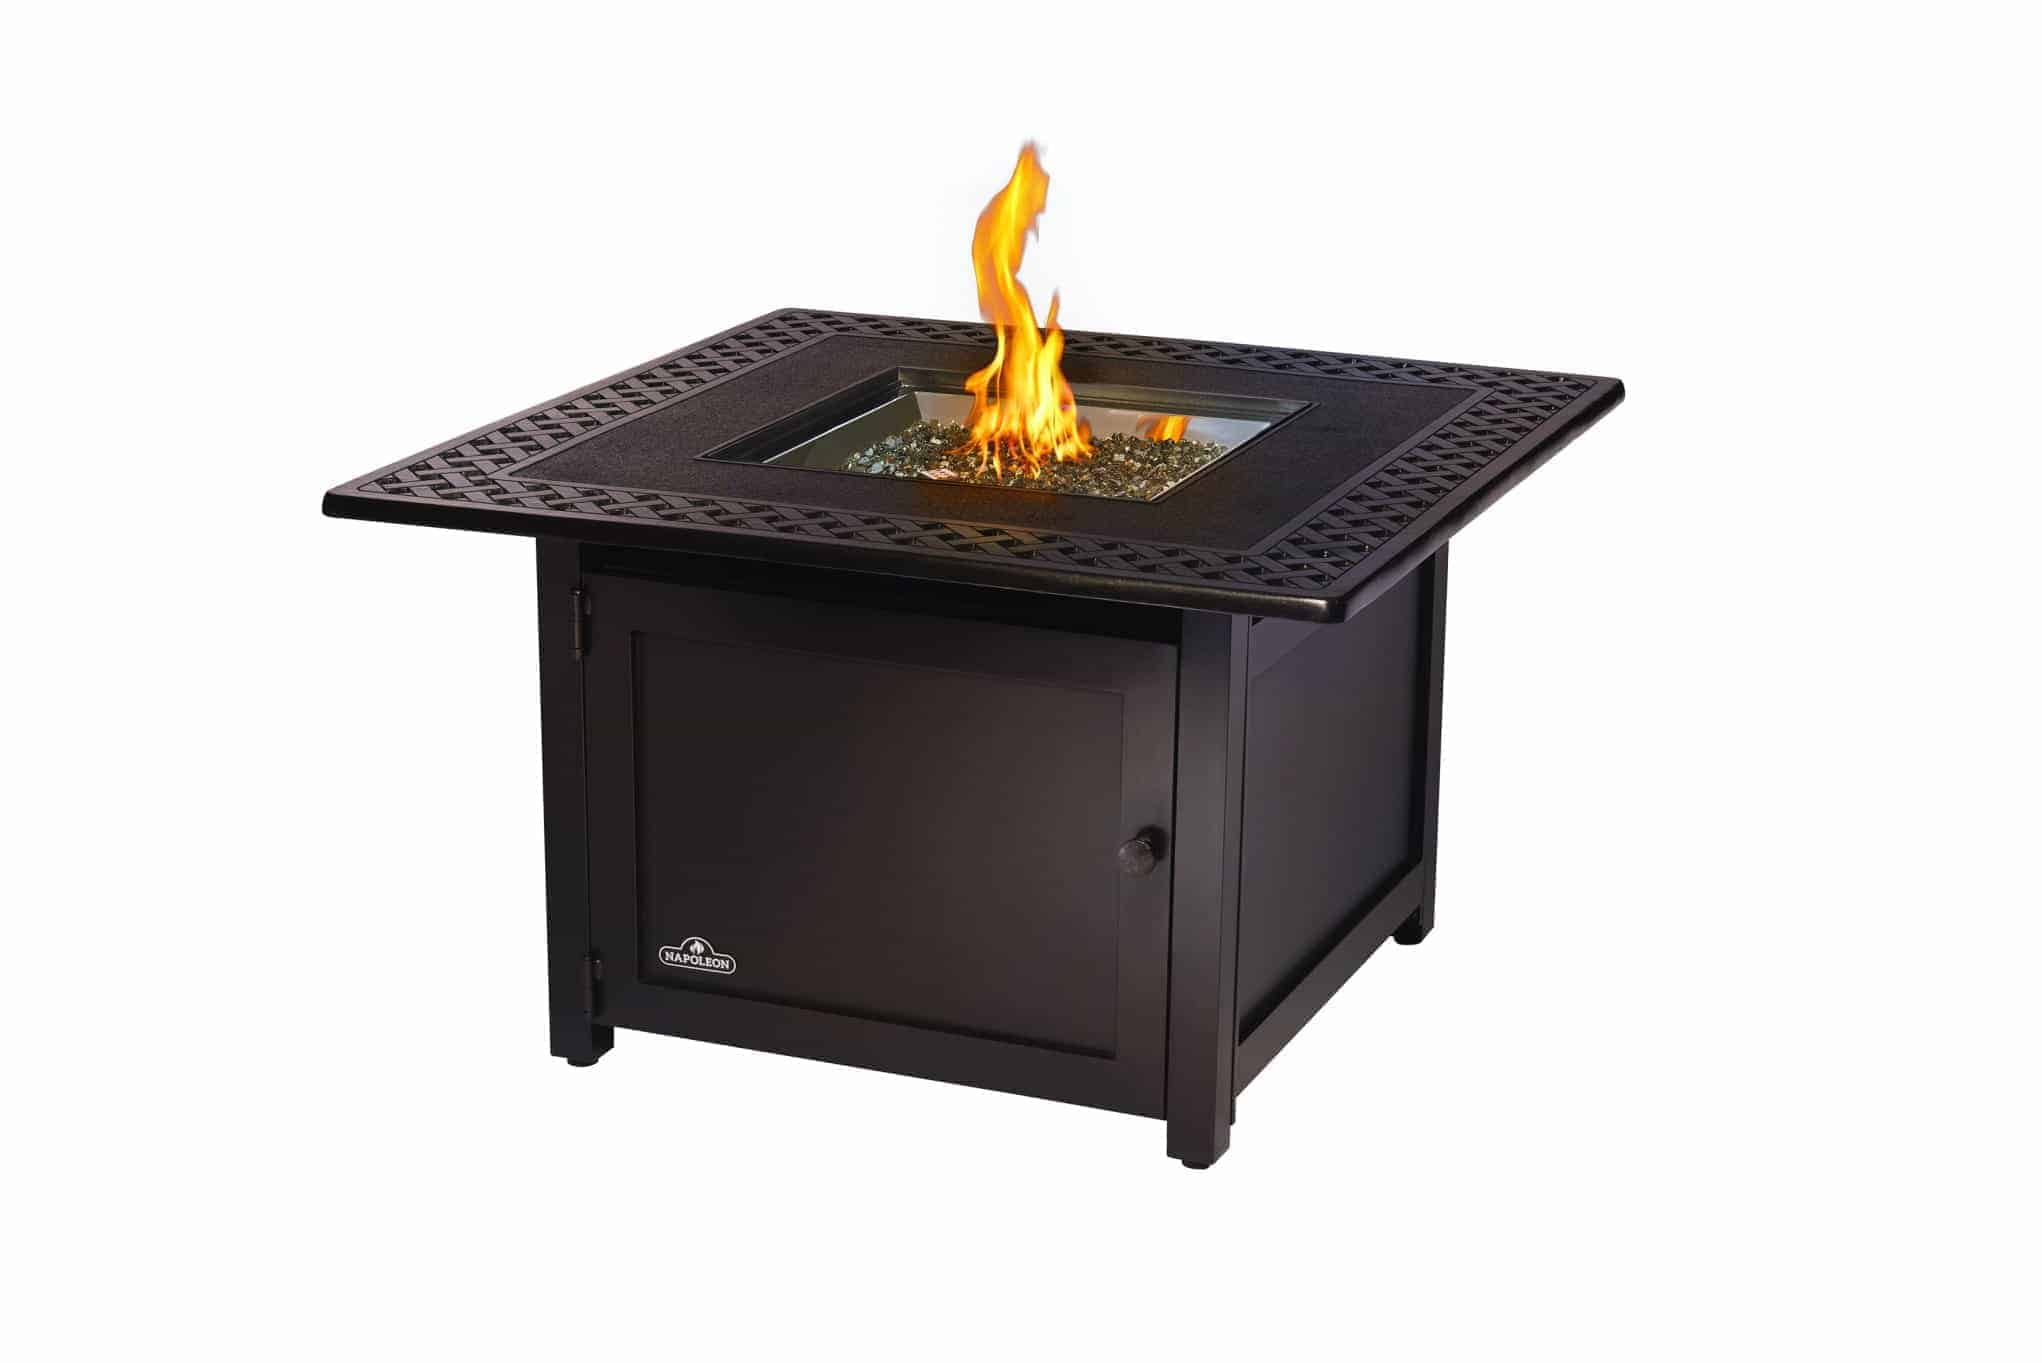 Victorian Square Outdoor Gas Fire Table Outdoor Heating Outdoor Ie